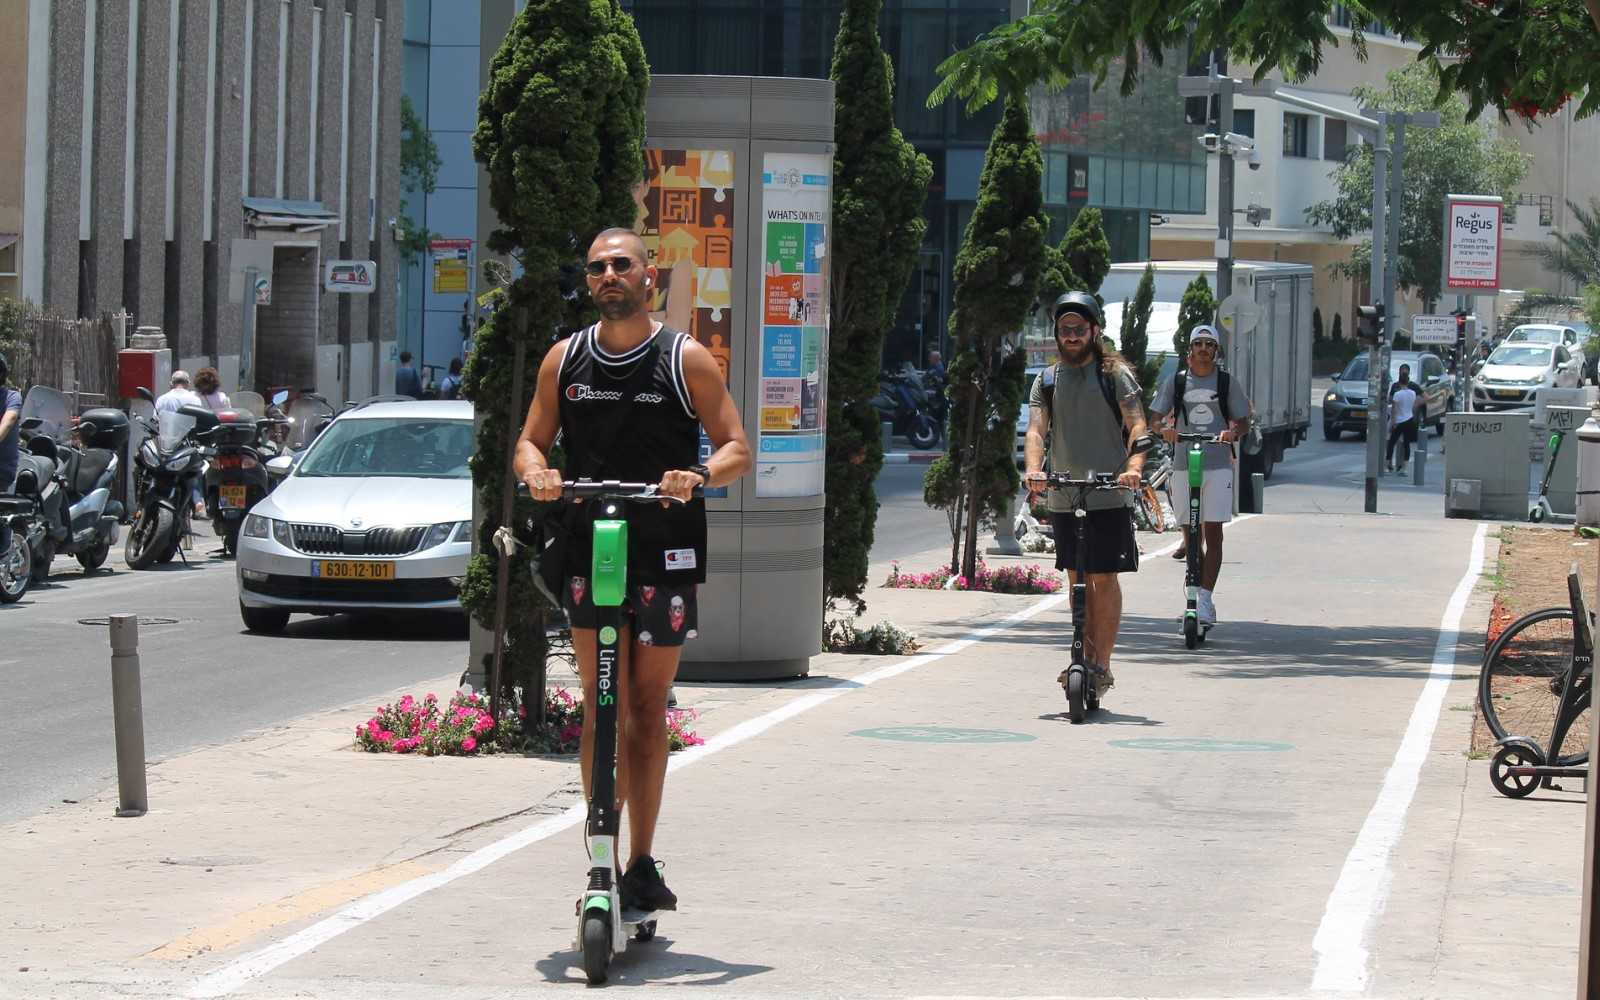 Tel Aviv's scooter craze, explained by the guy behind it - ISRAEL21c